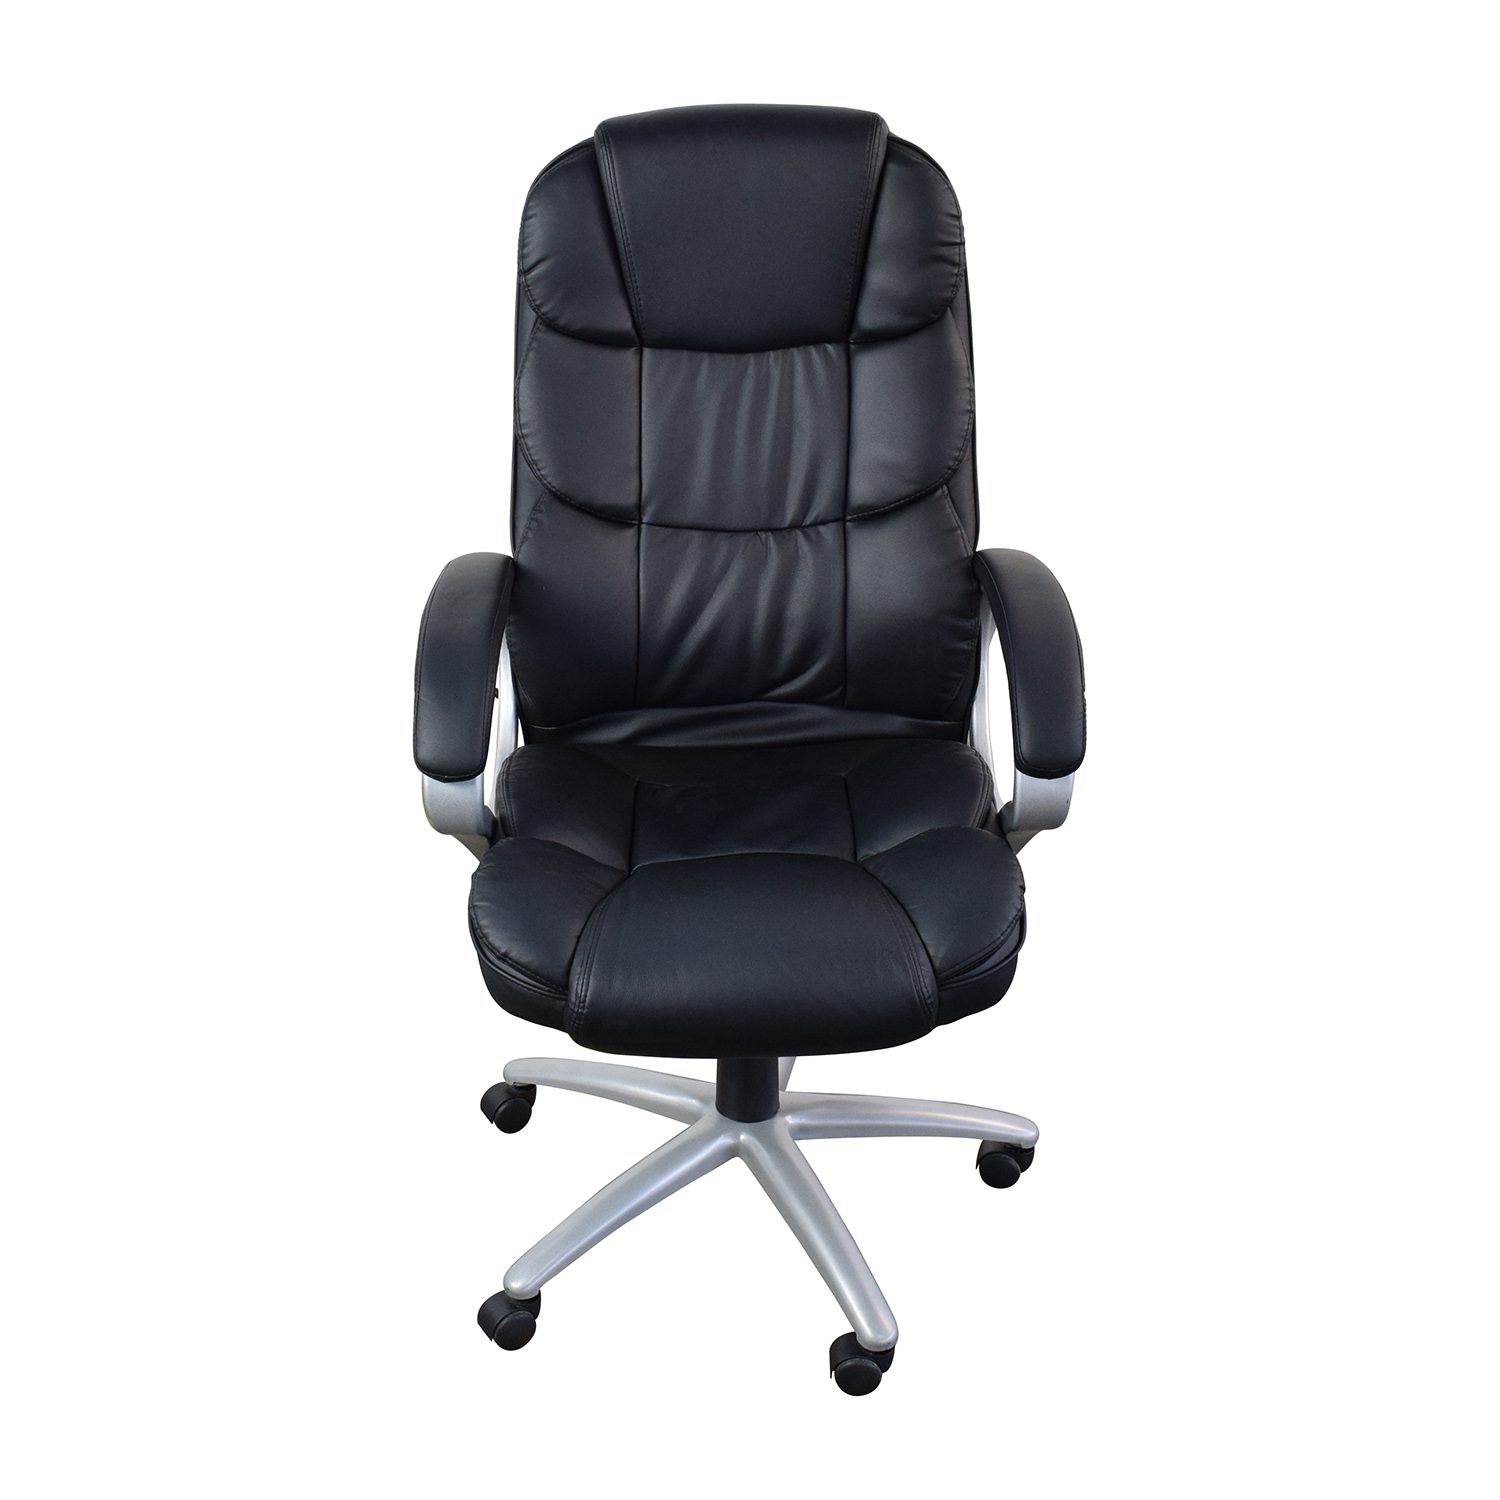 Leather Executive Chair 57 Off Black Leather Executive Office Chair Chairs